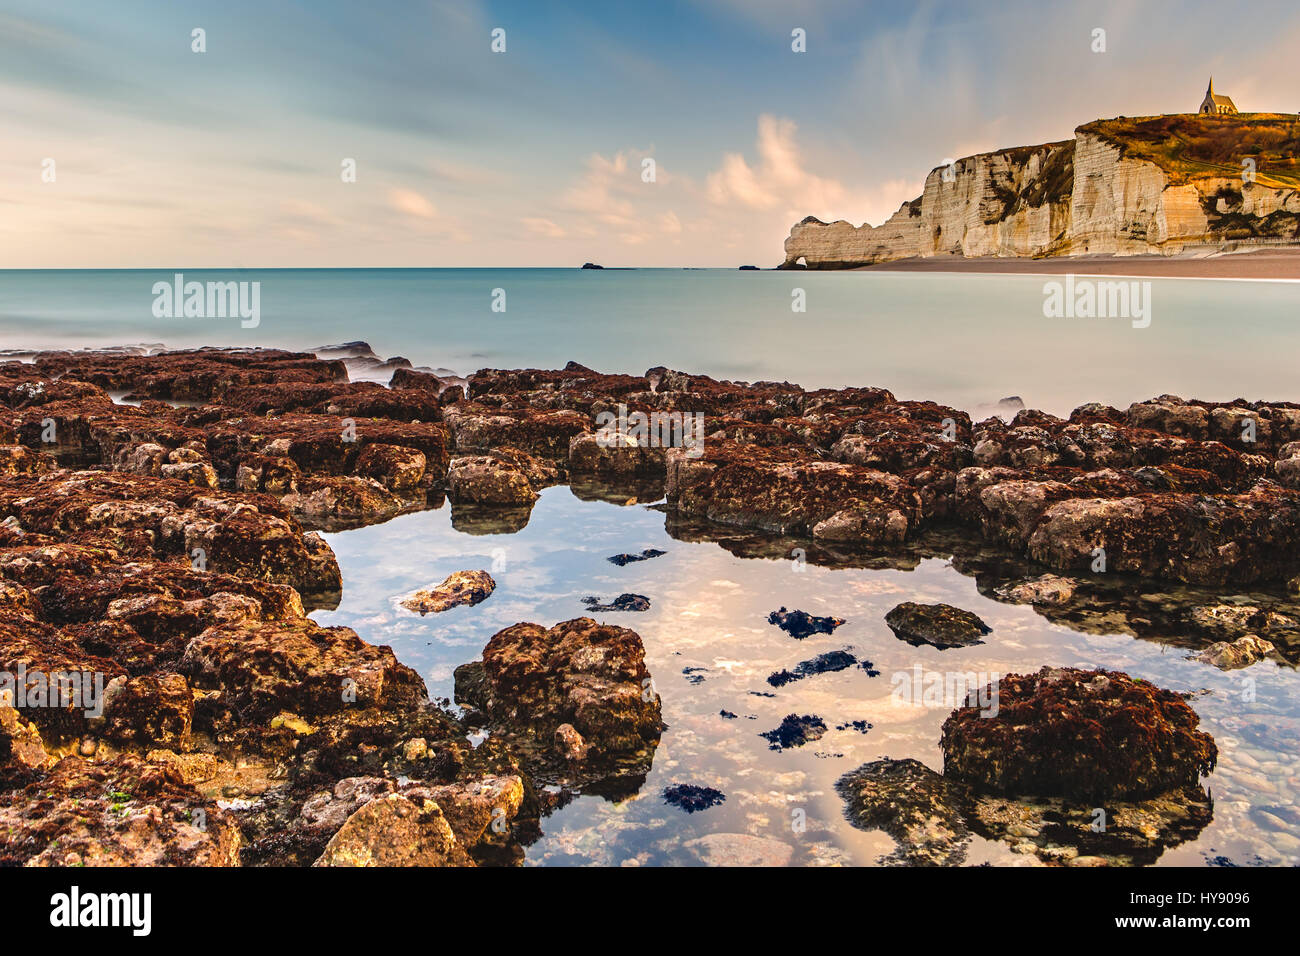 Spectacular natural cliffs Aval of Etretat and beautiful famous coastline, Normandy, France, Europe - Stock Image